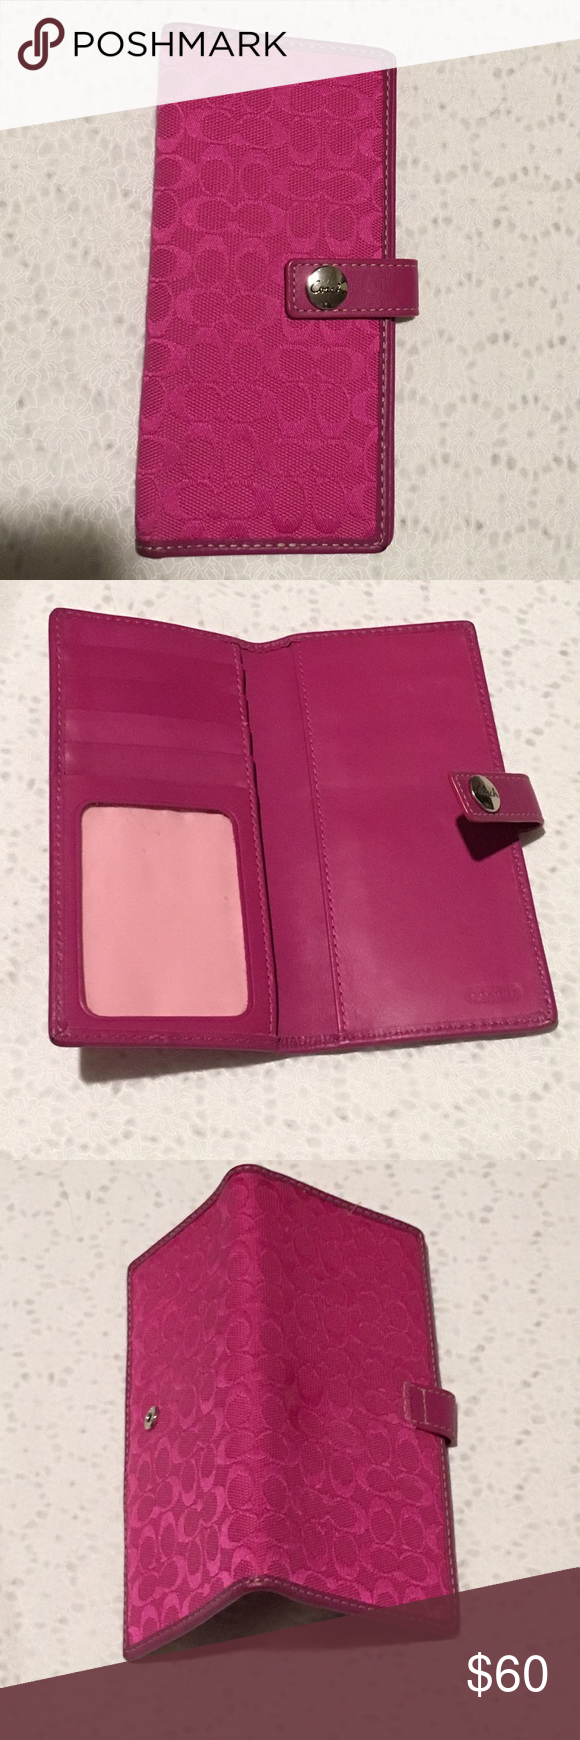 """Authentic Coach """" C"""" Flap Wallet. Like New. Single Fold Coach Wallet. Signature Canvas with small """" C"""" design. With patent leather trim. 4 credit card slots, with 1 clear id slot. Tag Snap Closure. 3.25""""x 6.75"""". Coach Bags Wallets"""